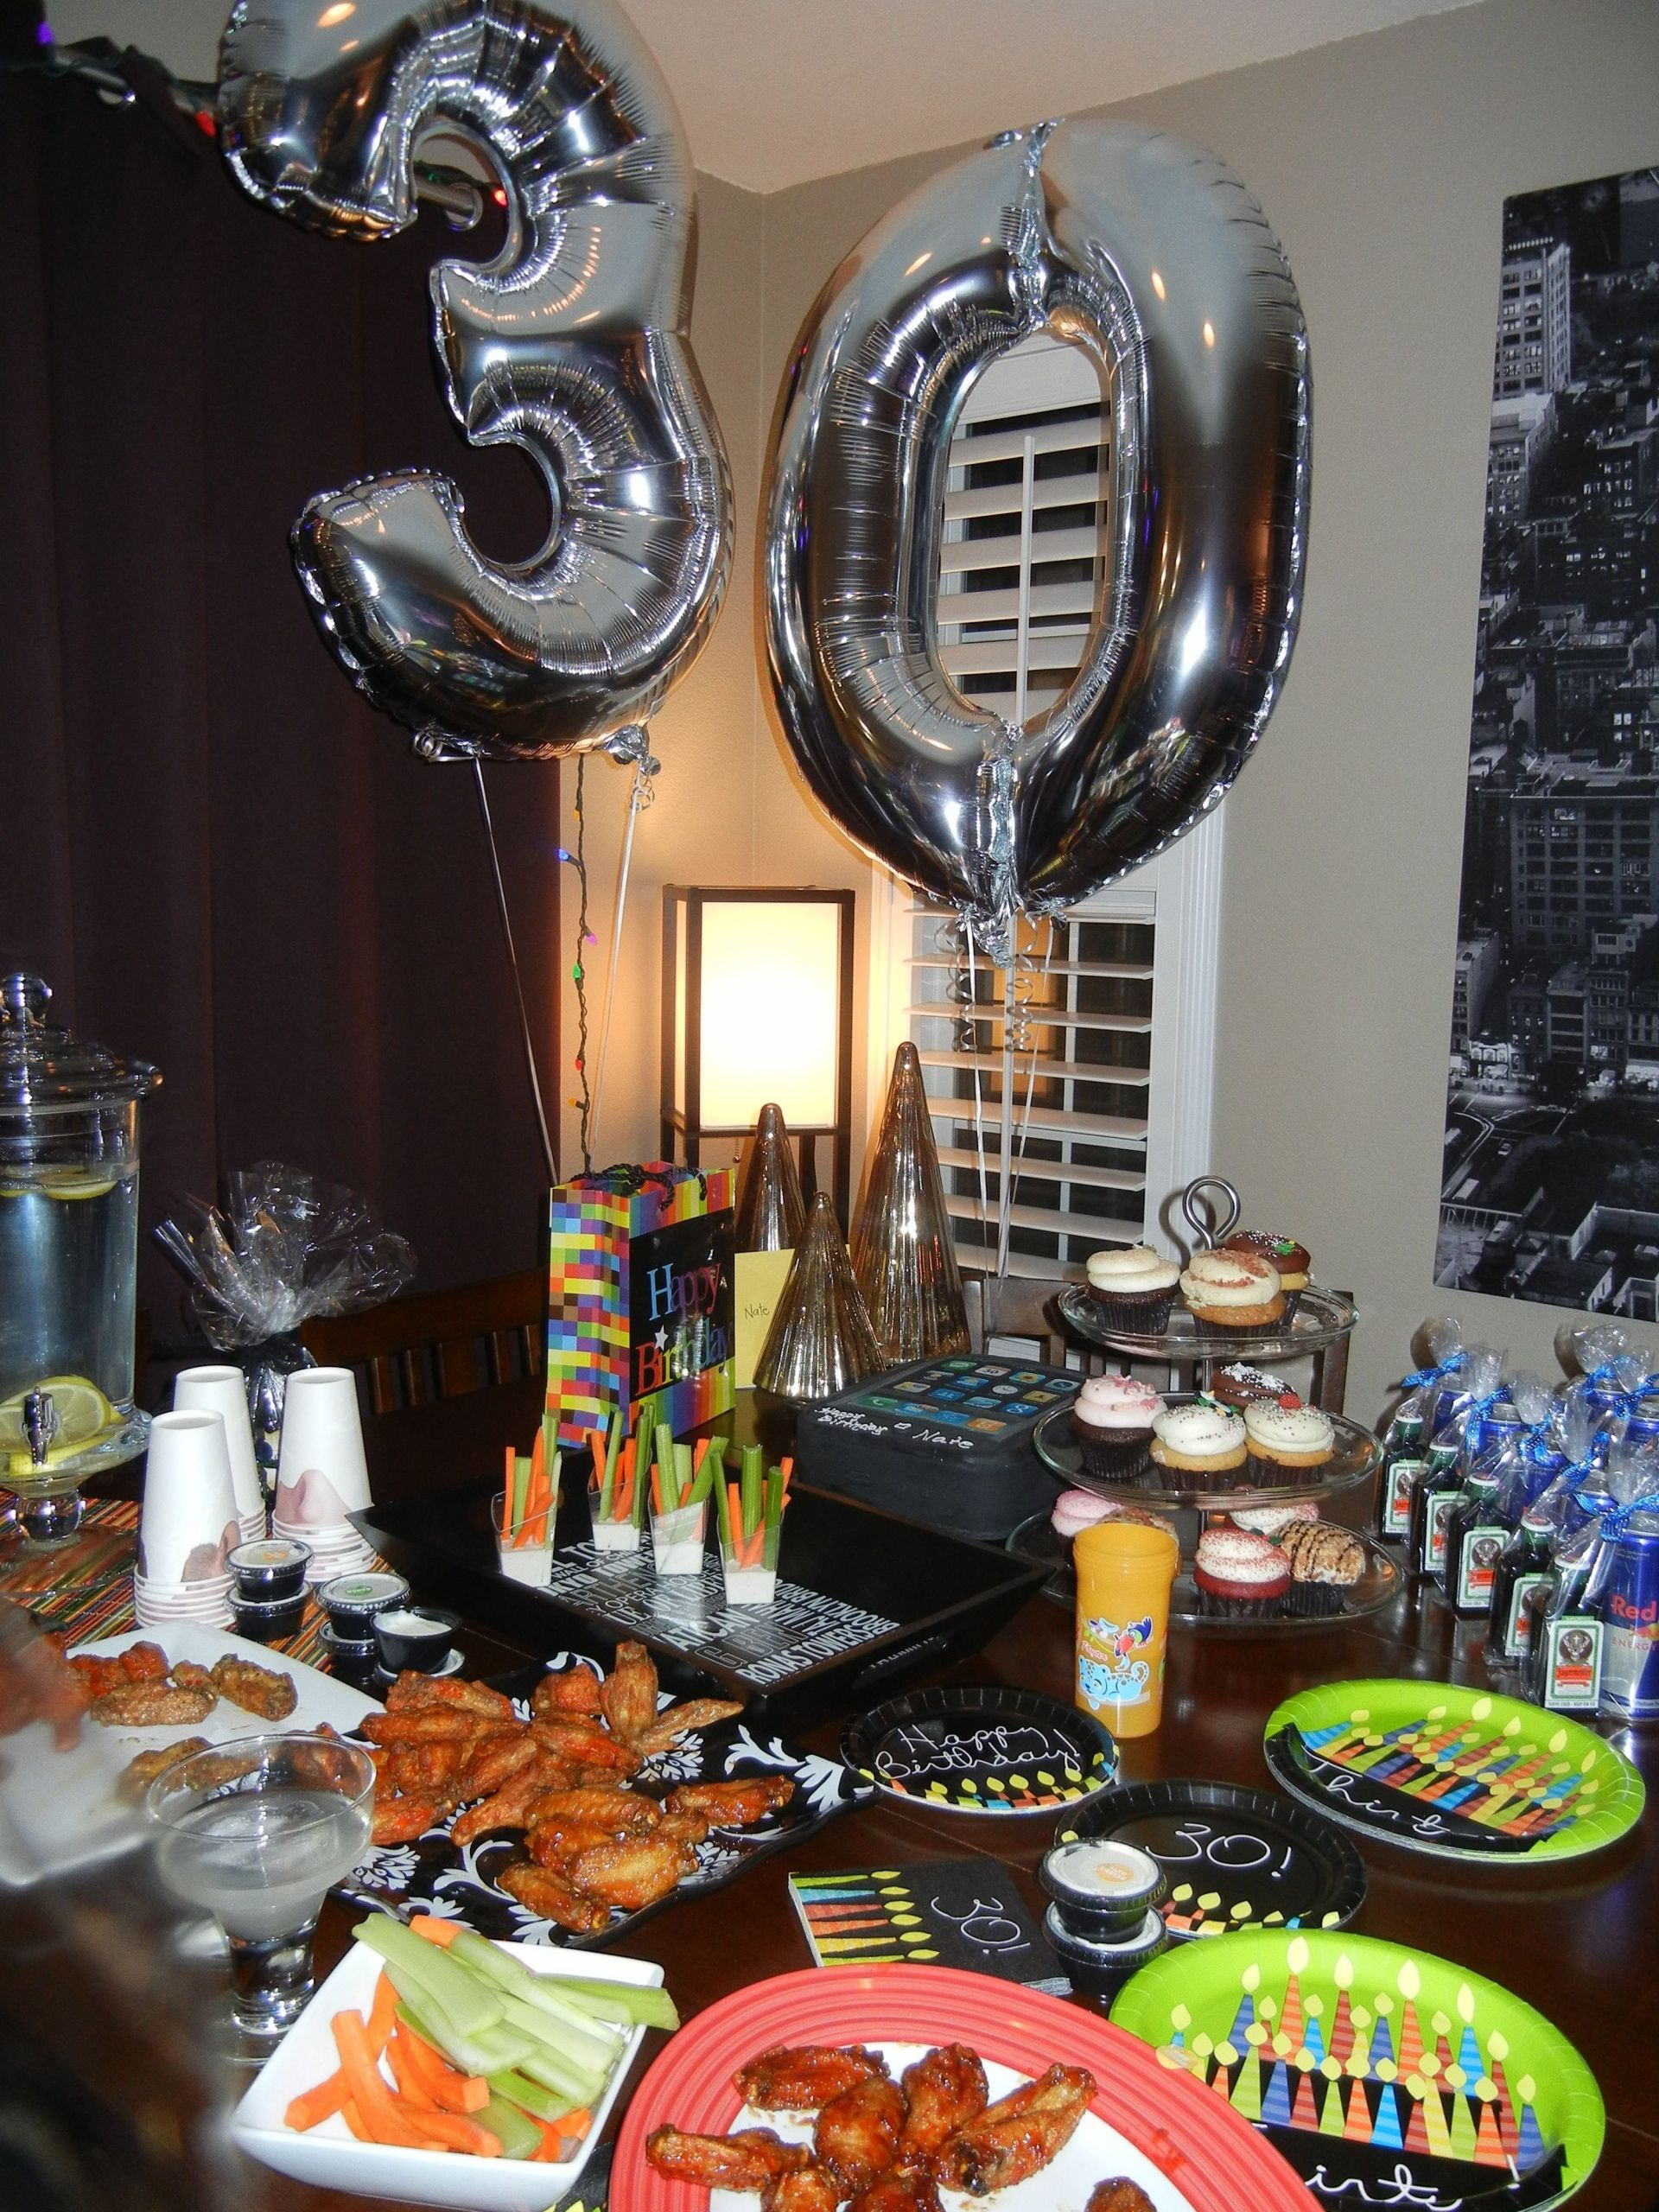 30Th Birthday Gift Ideas For Him  10 Gorgeous 30Th Birthday Party Ideas For Him 2019